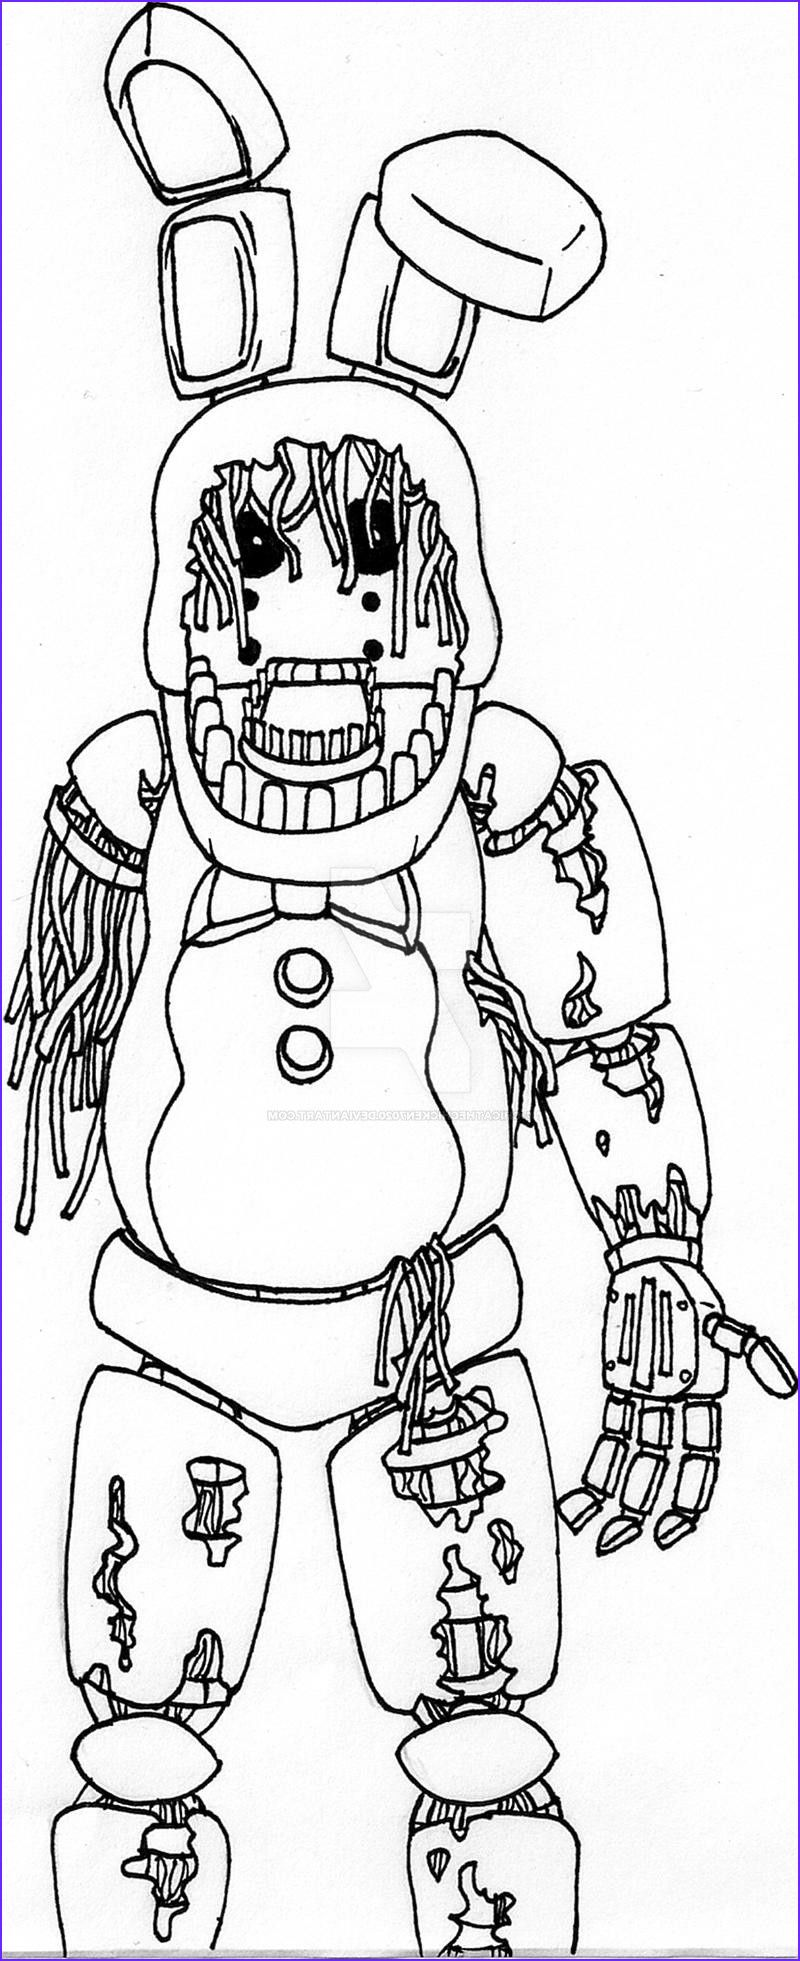 Fnaf Coloring Pages Withered Bonnie : coloring, pages, withered, bonnie, Withered, Bonnie, Chicathechicken7020, DeviantArt, Coloring, Pages,, Puppy, Birthday, Pages